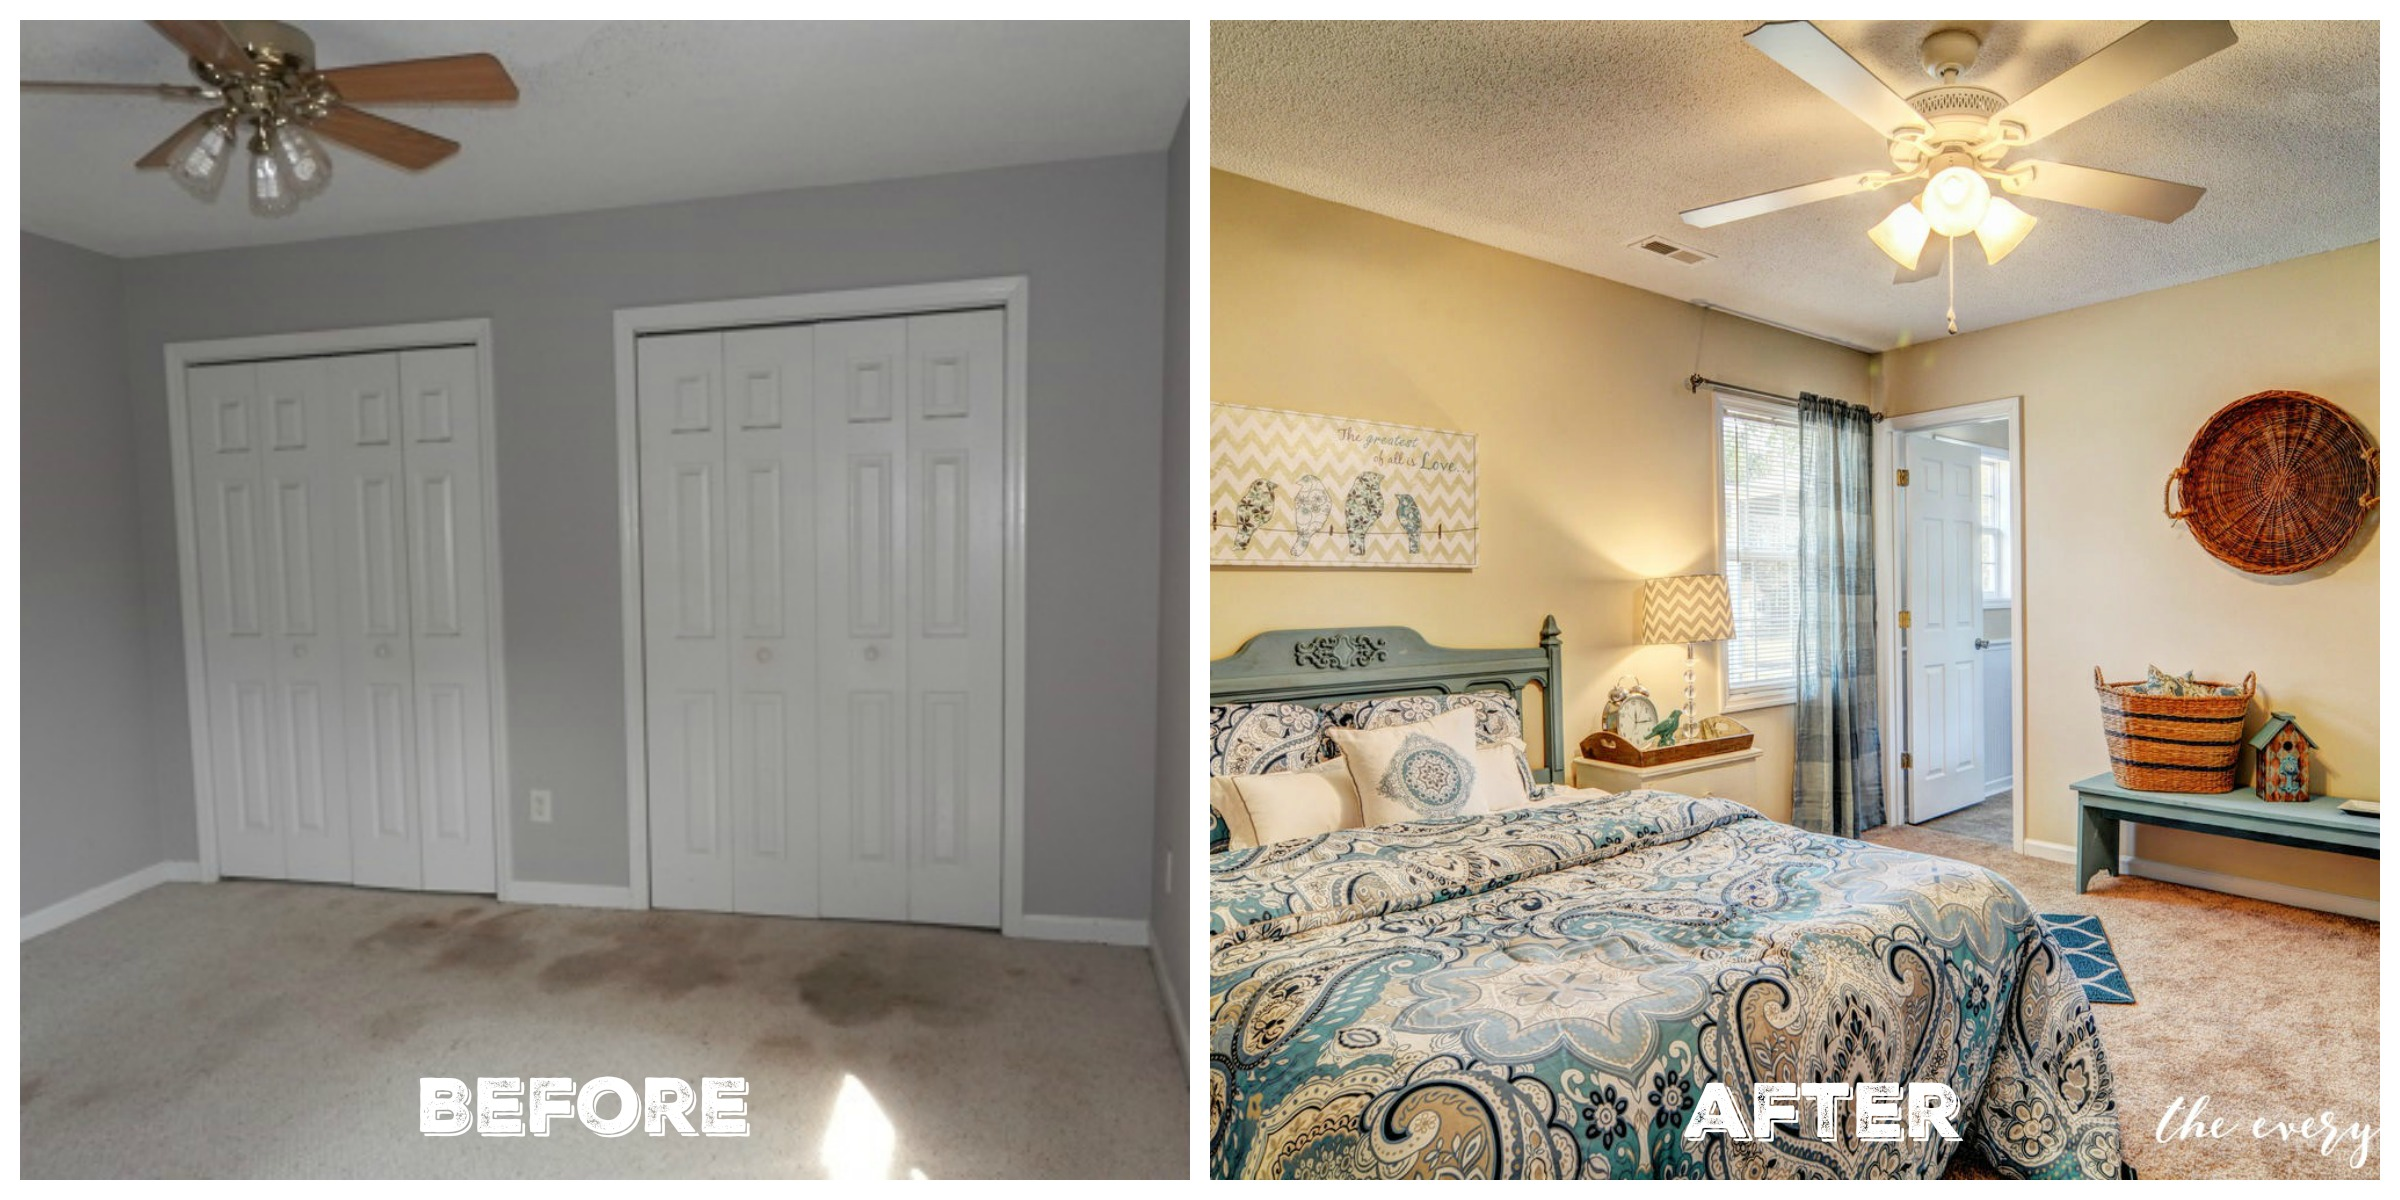 Before After Master Bedroom Flip House Reveal The